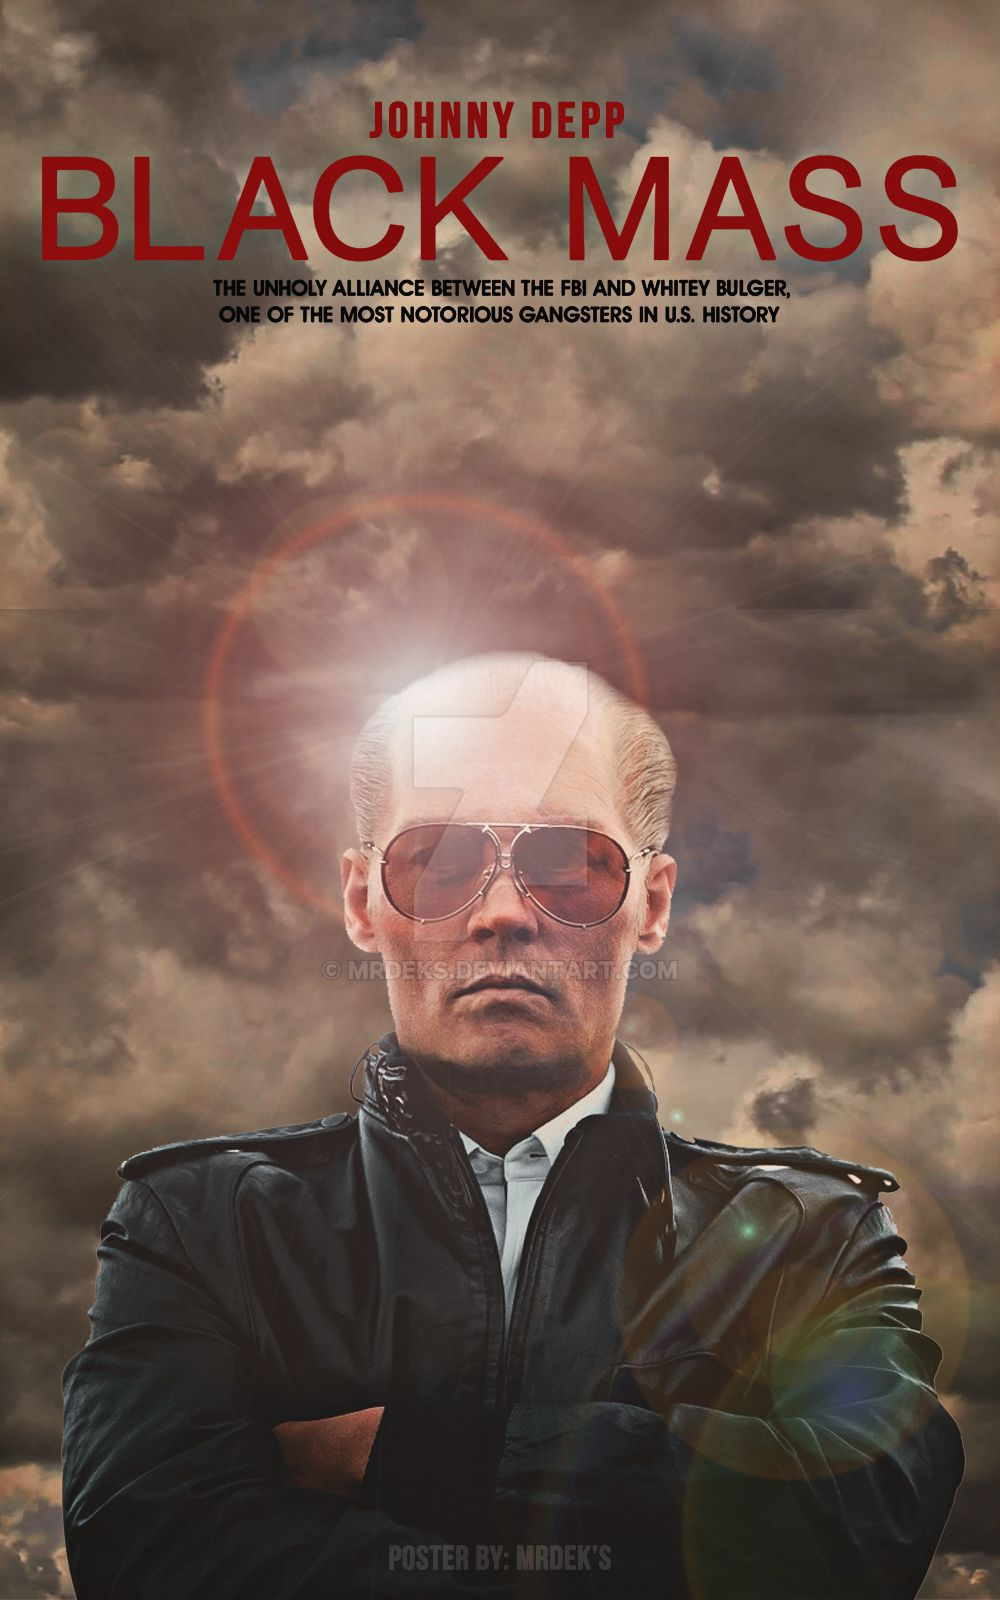 Black Mass - Poster (2015) by MrDeks on DeviantArt